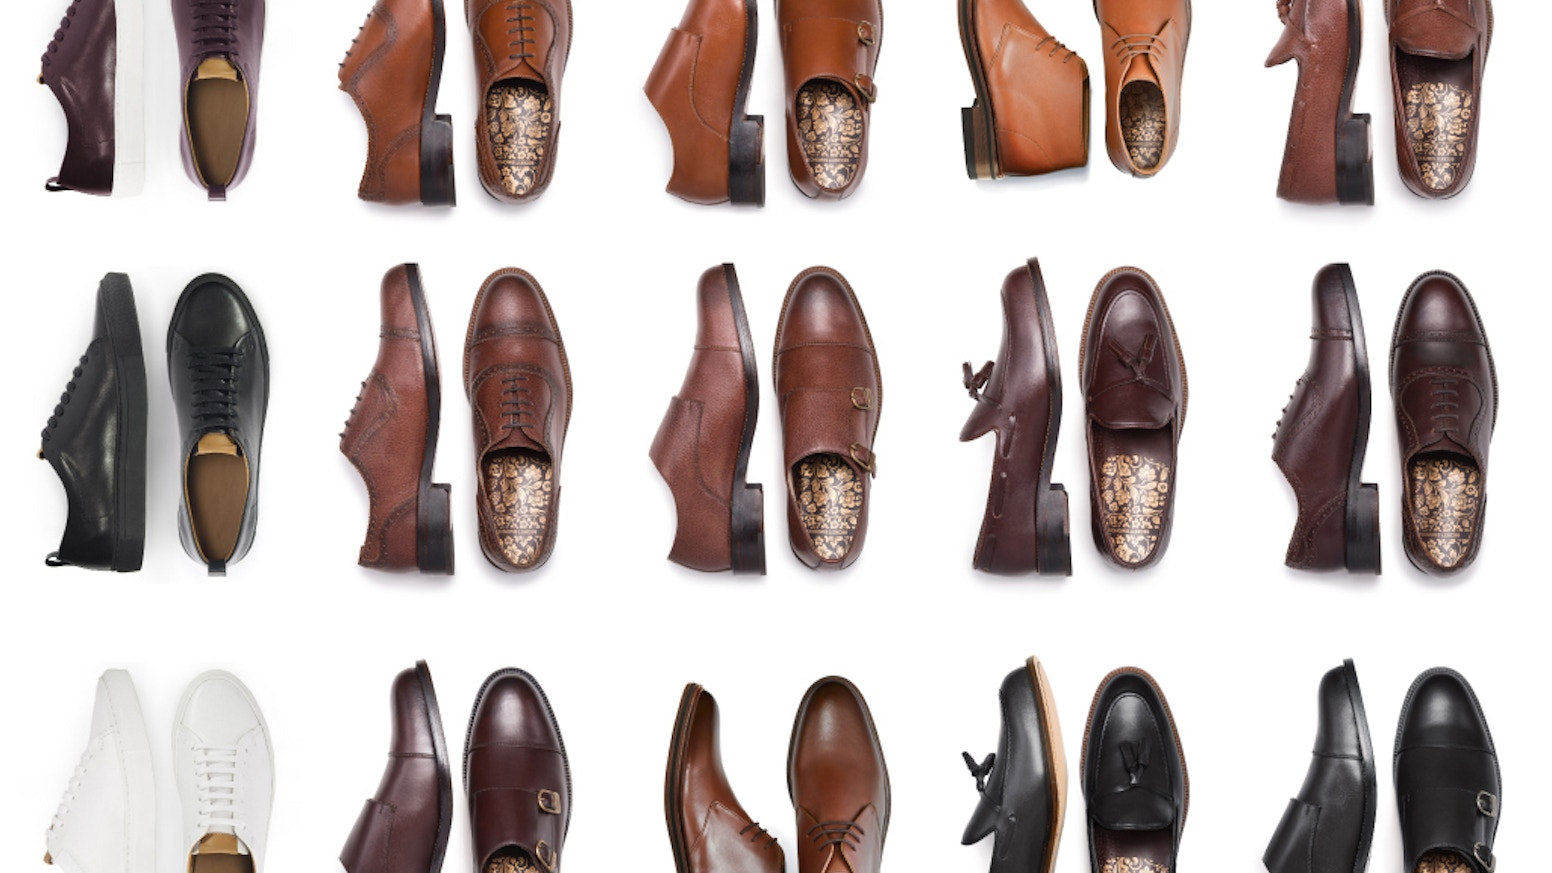 Look sharp without breaking the bank. Premium quality, handcrafted, extremely comfortable and affordable leather shoes.